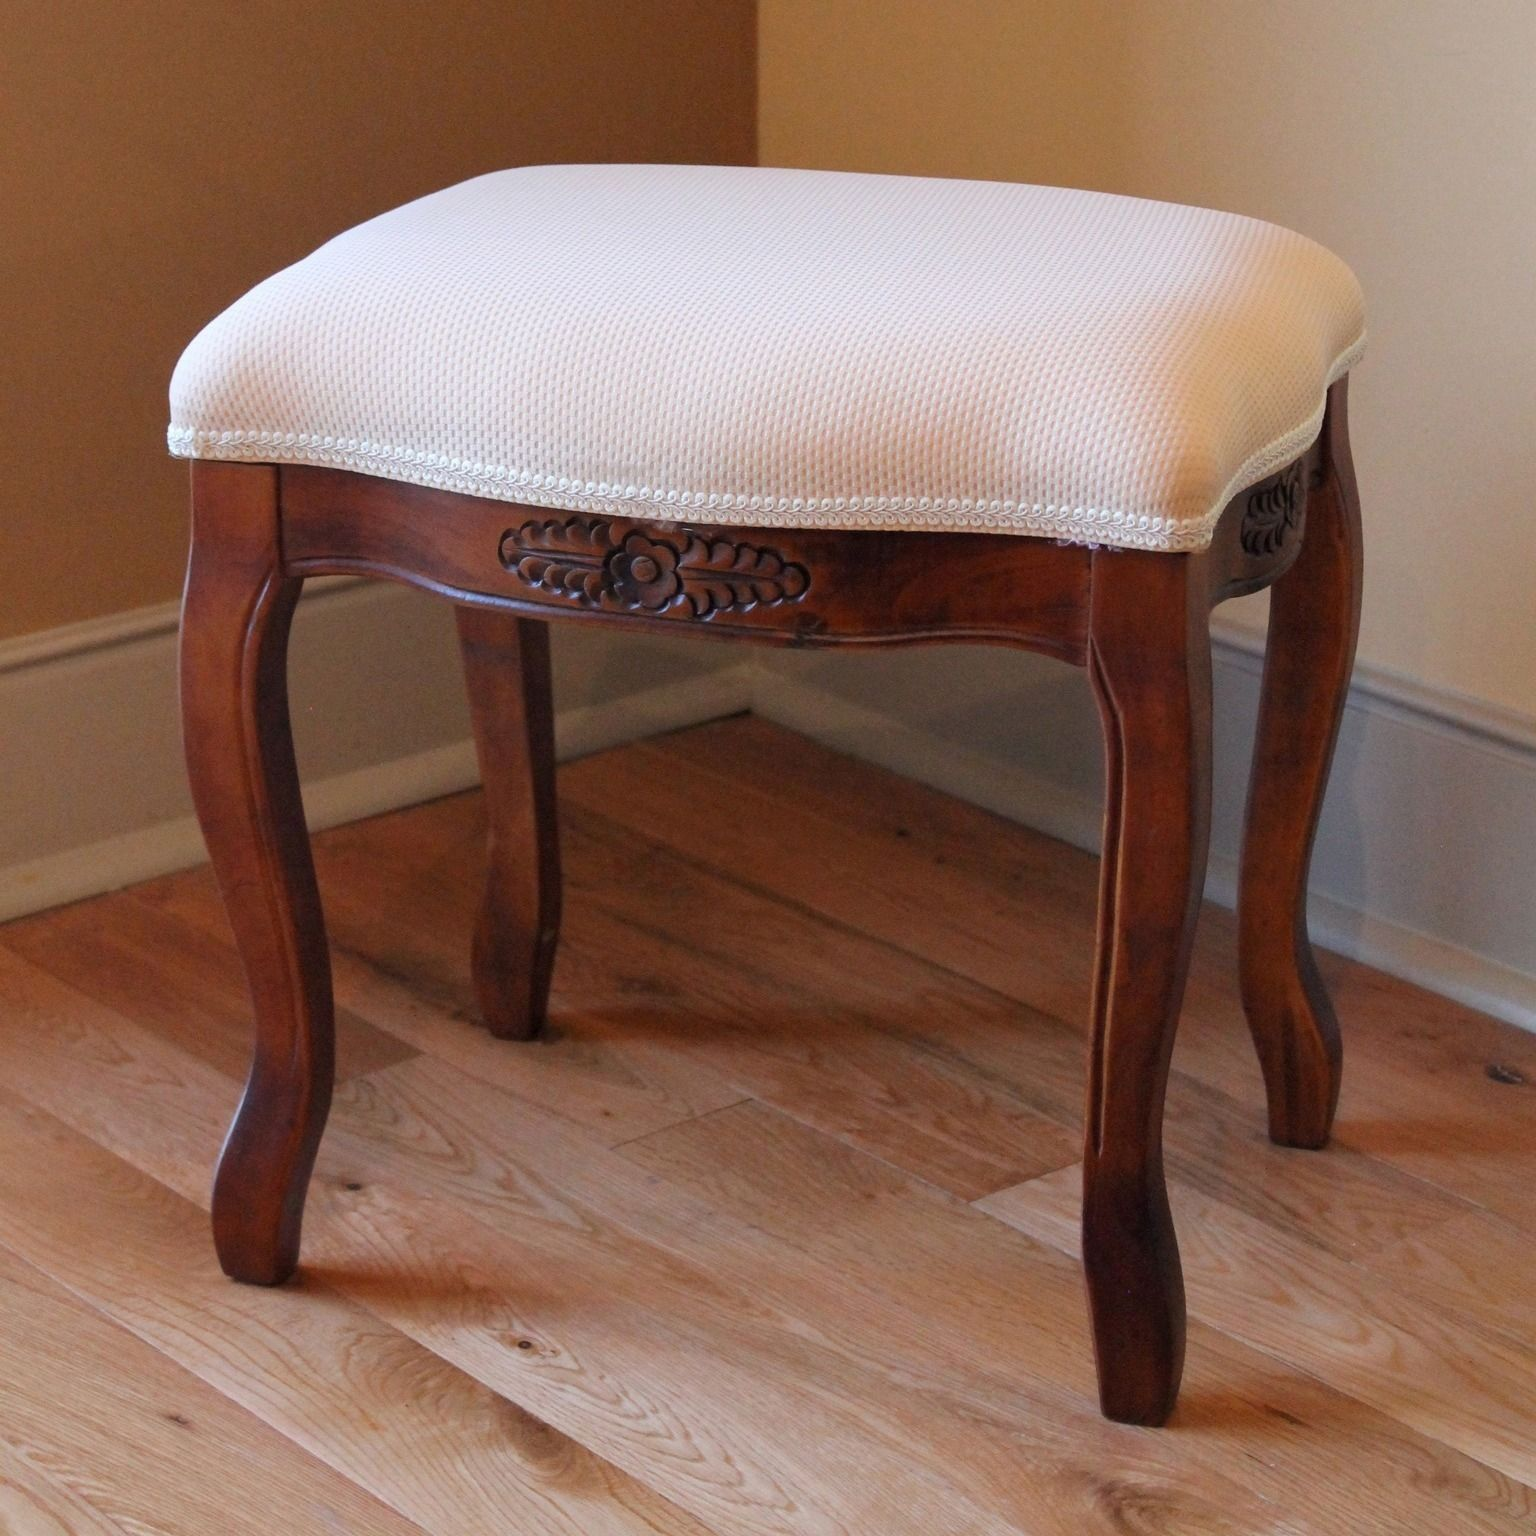 Enhance Your Home Decor With This Vanity Stool With Cushioned Top Furniture Is Made Of